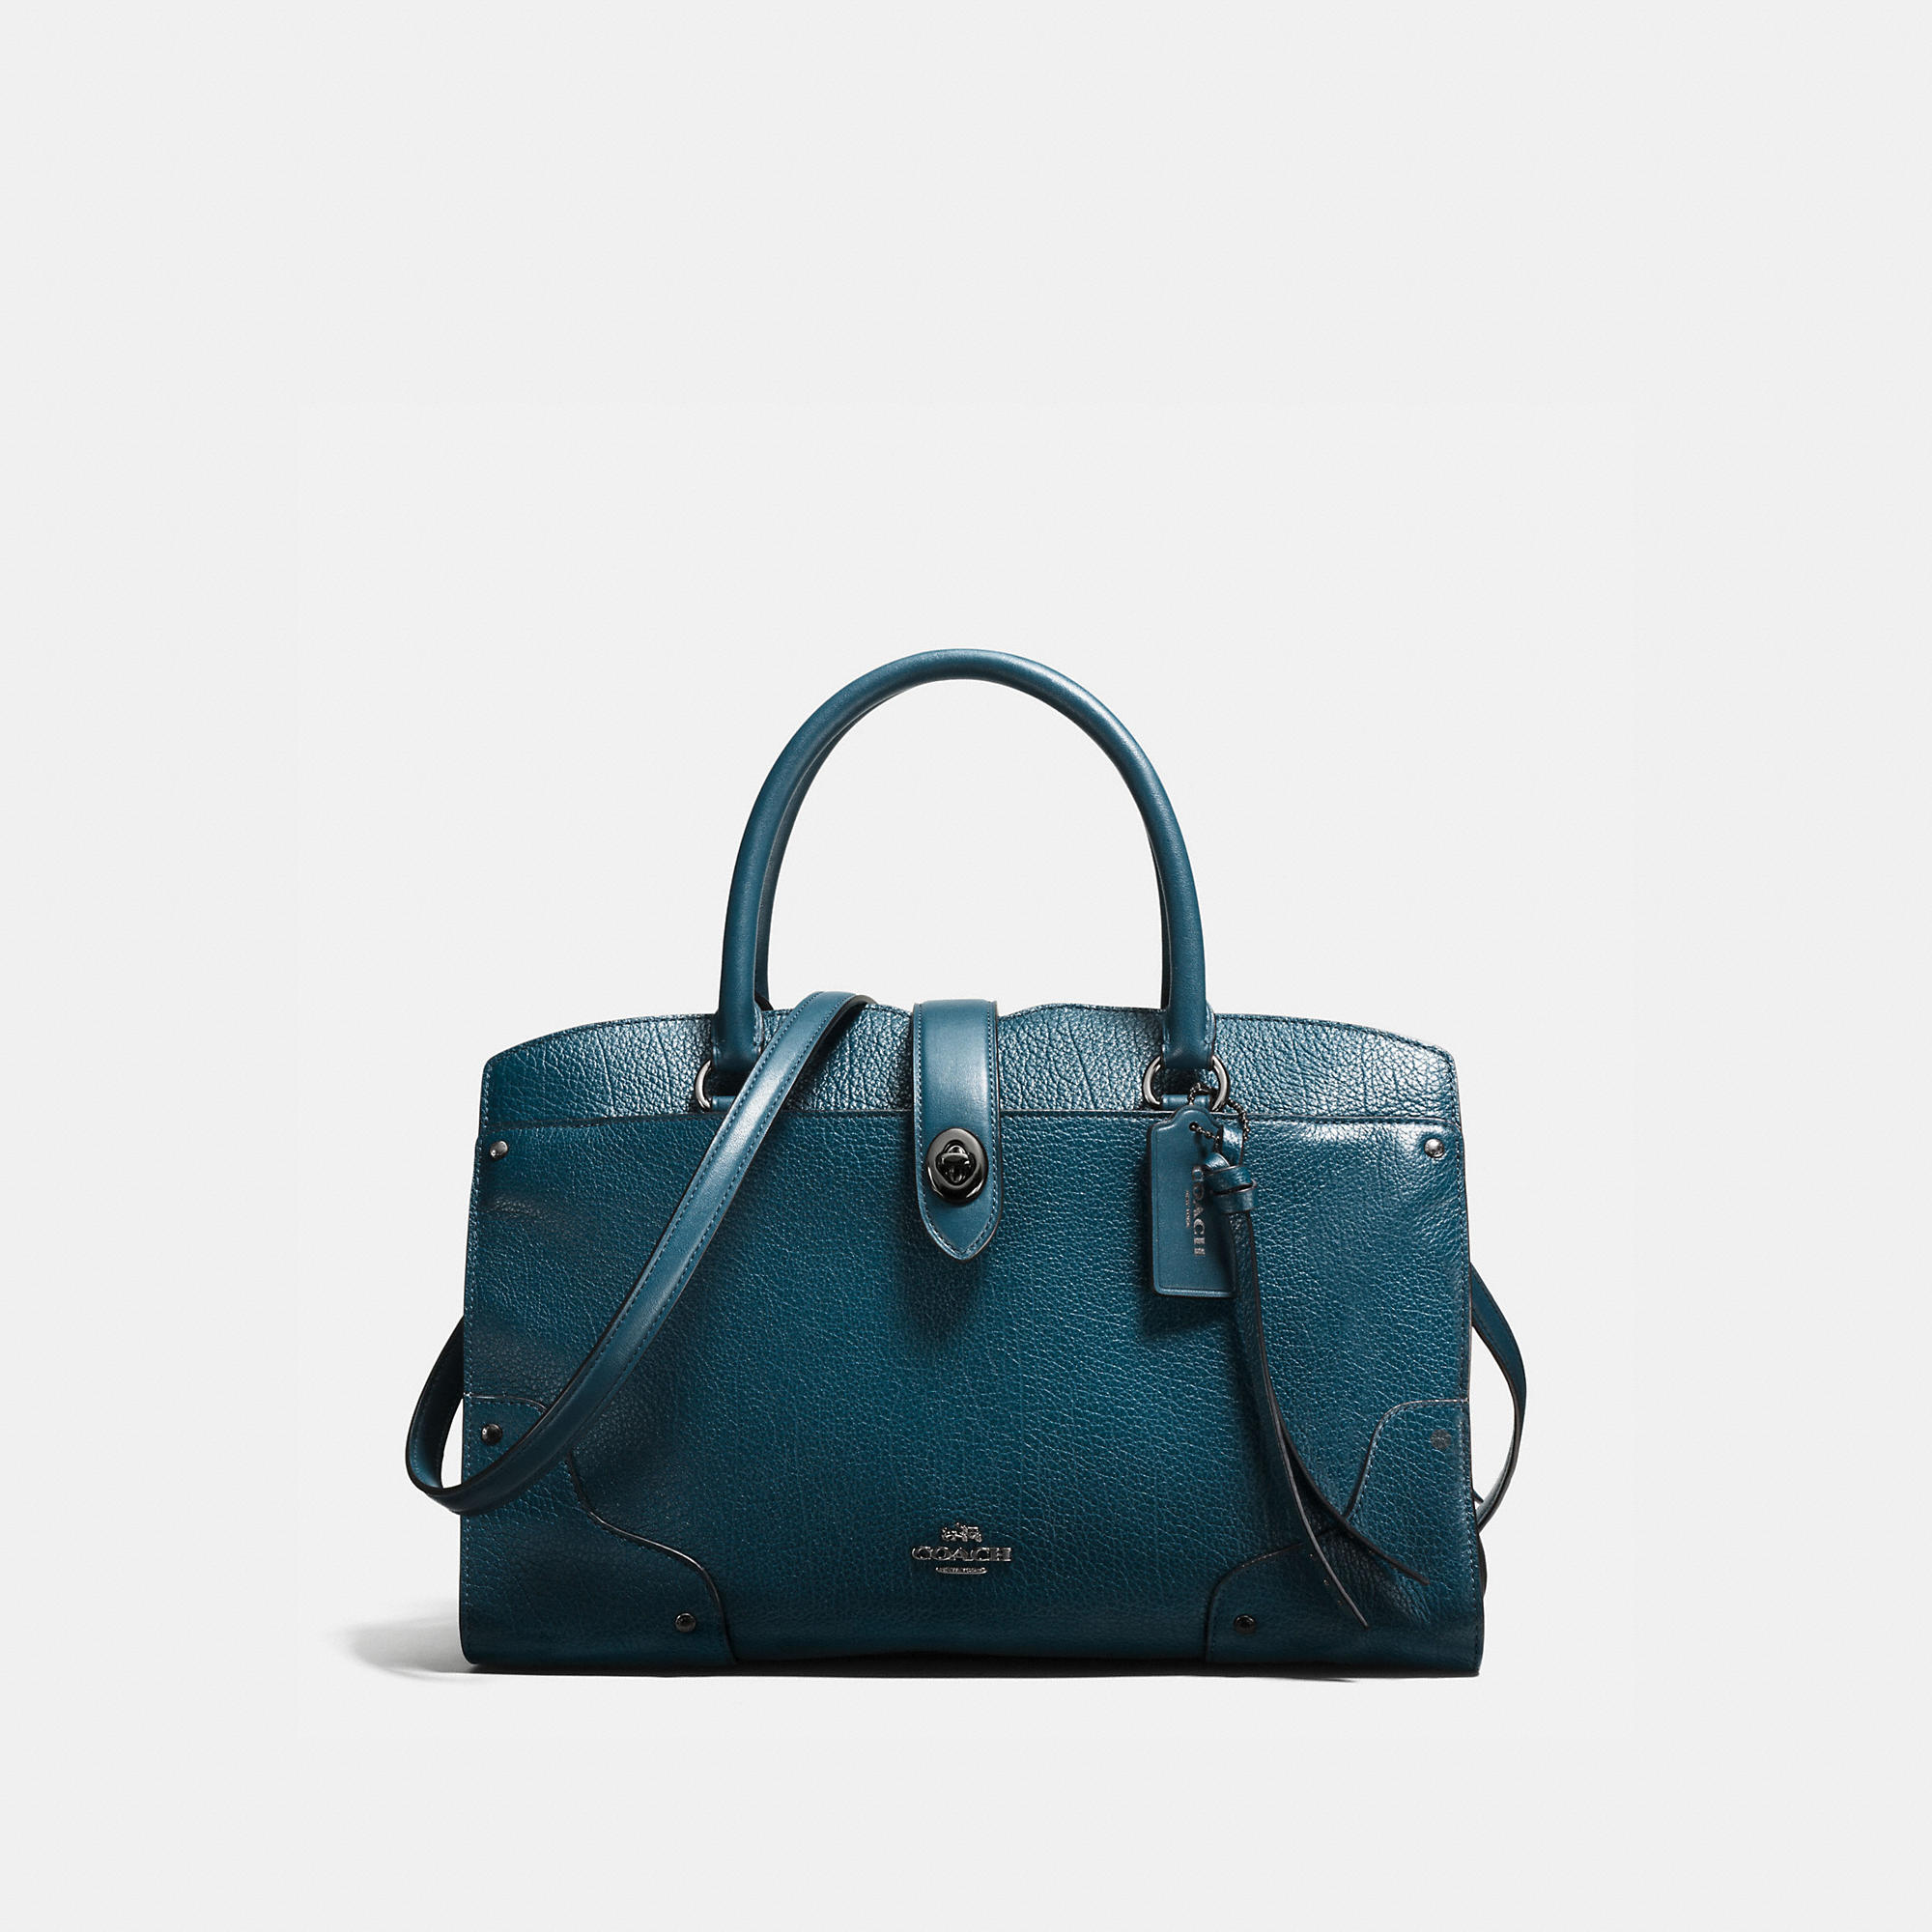 Coach Mercer Satchel 30 In Mixed Leathers With Whiplash Detail